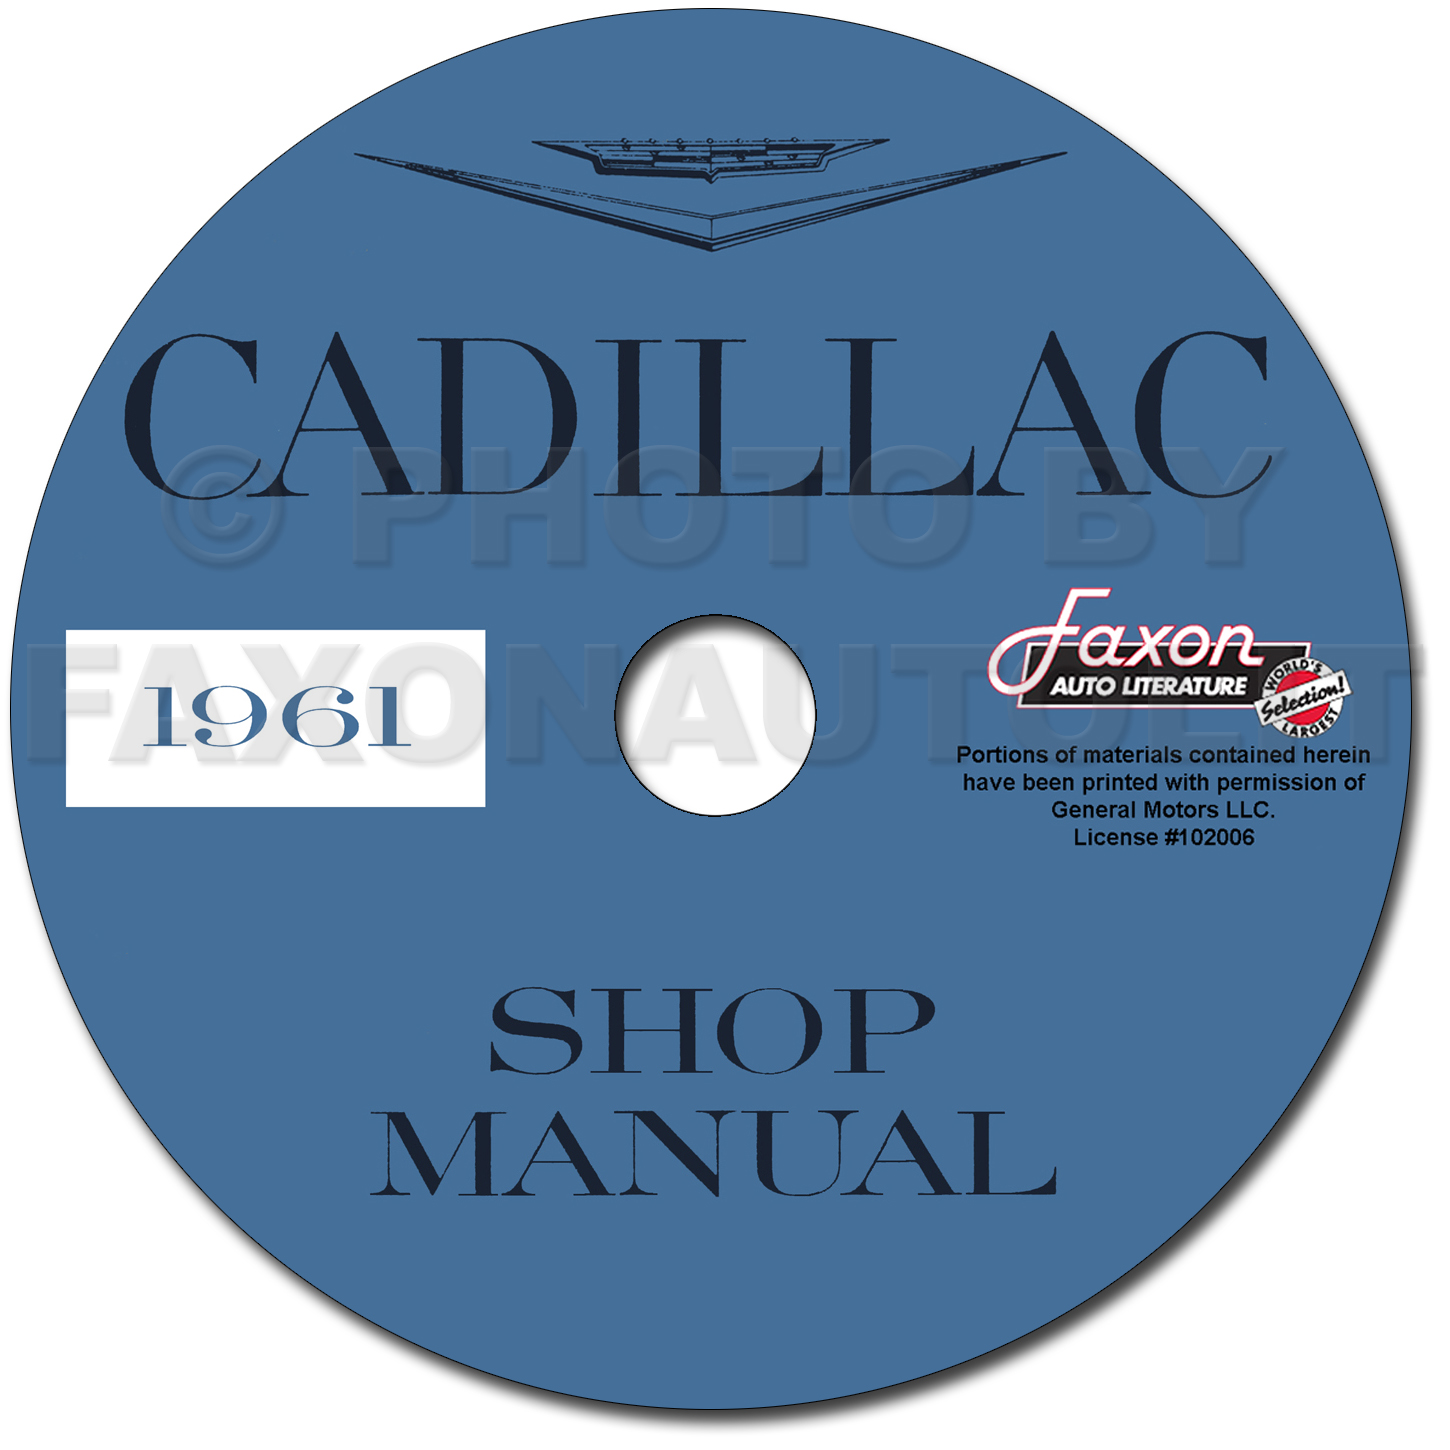 1961 Cadillac Shop Manual on CD-ROM